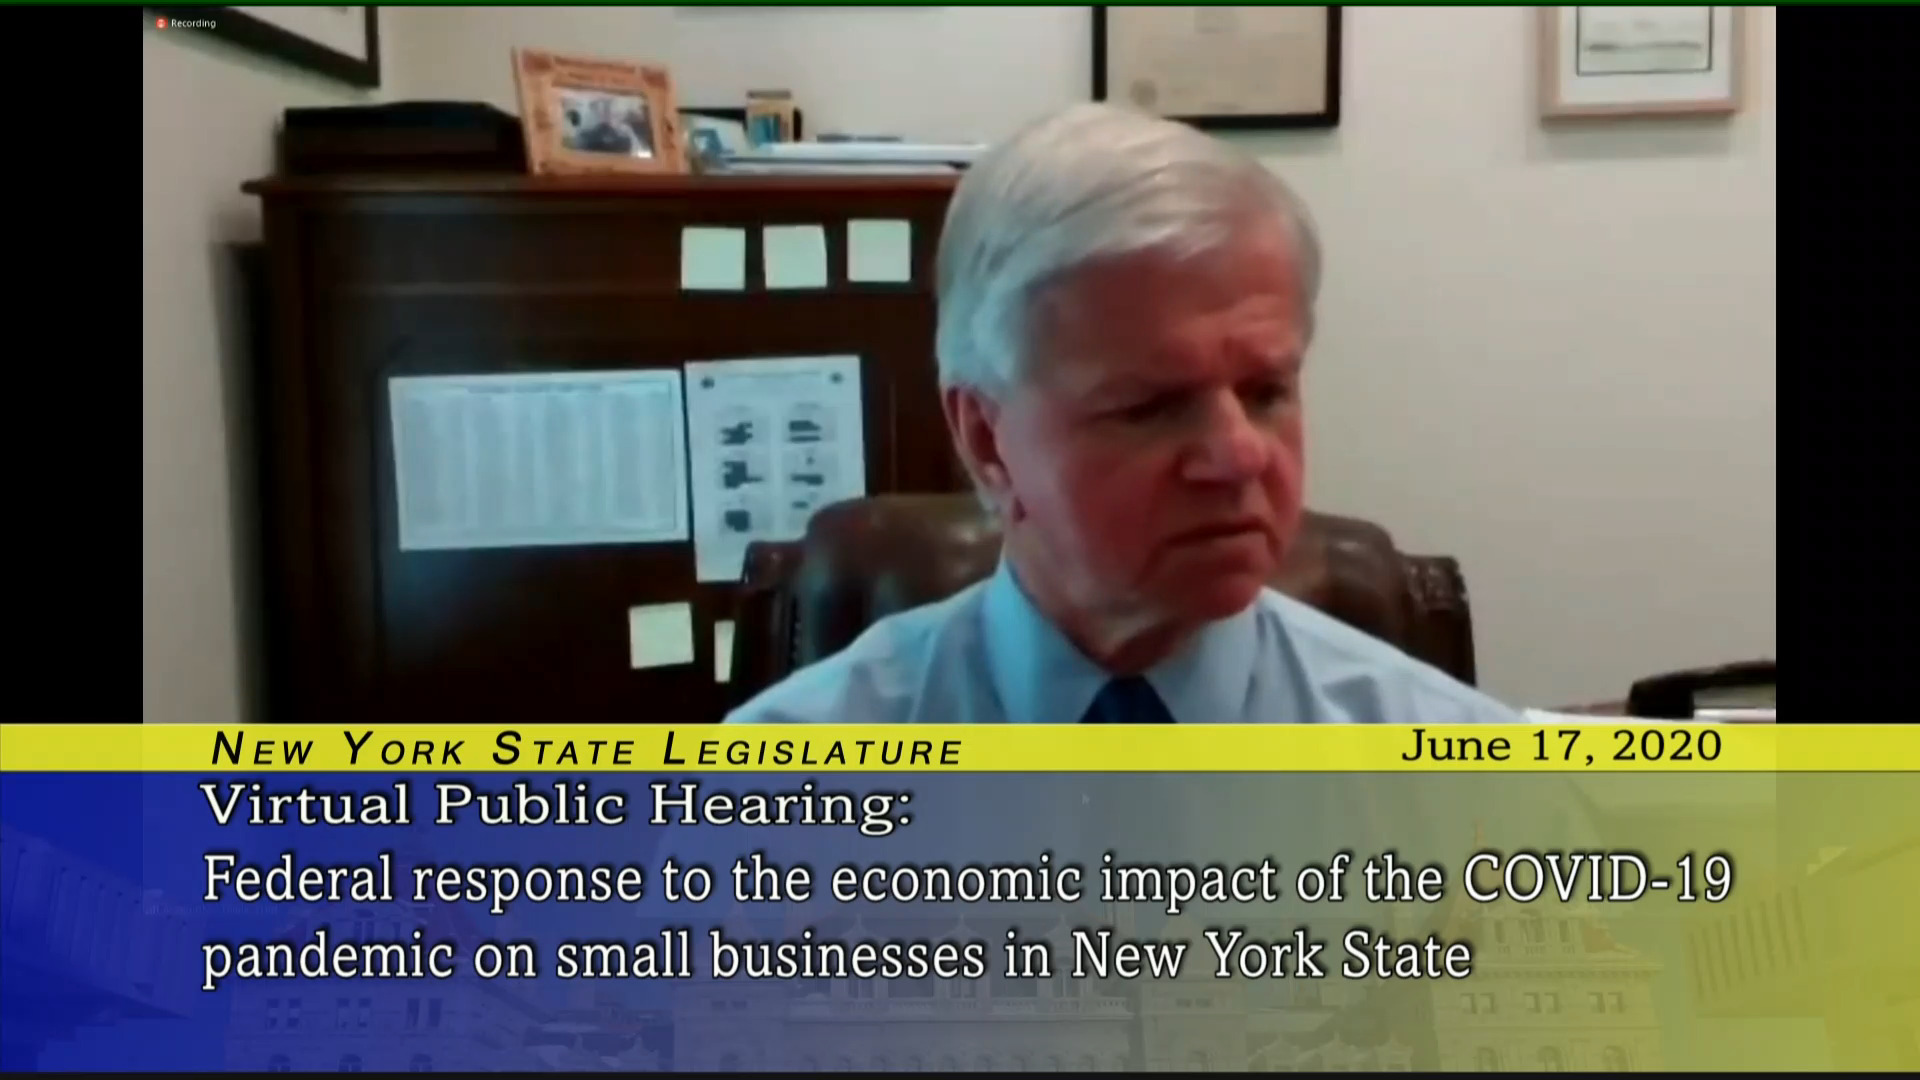 COVID-19 Impact on Small Business in NY